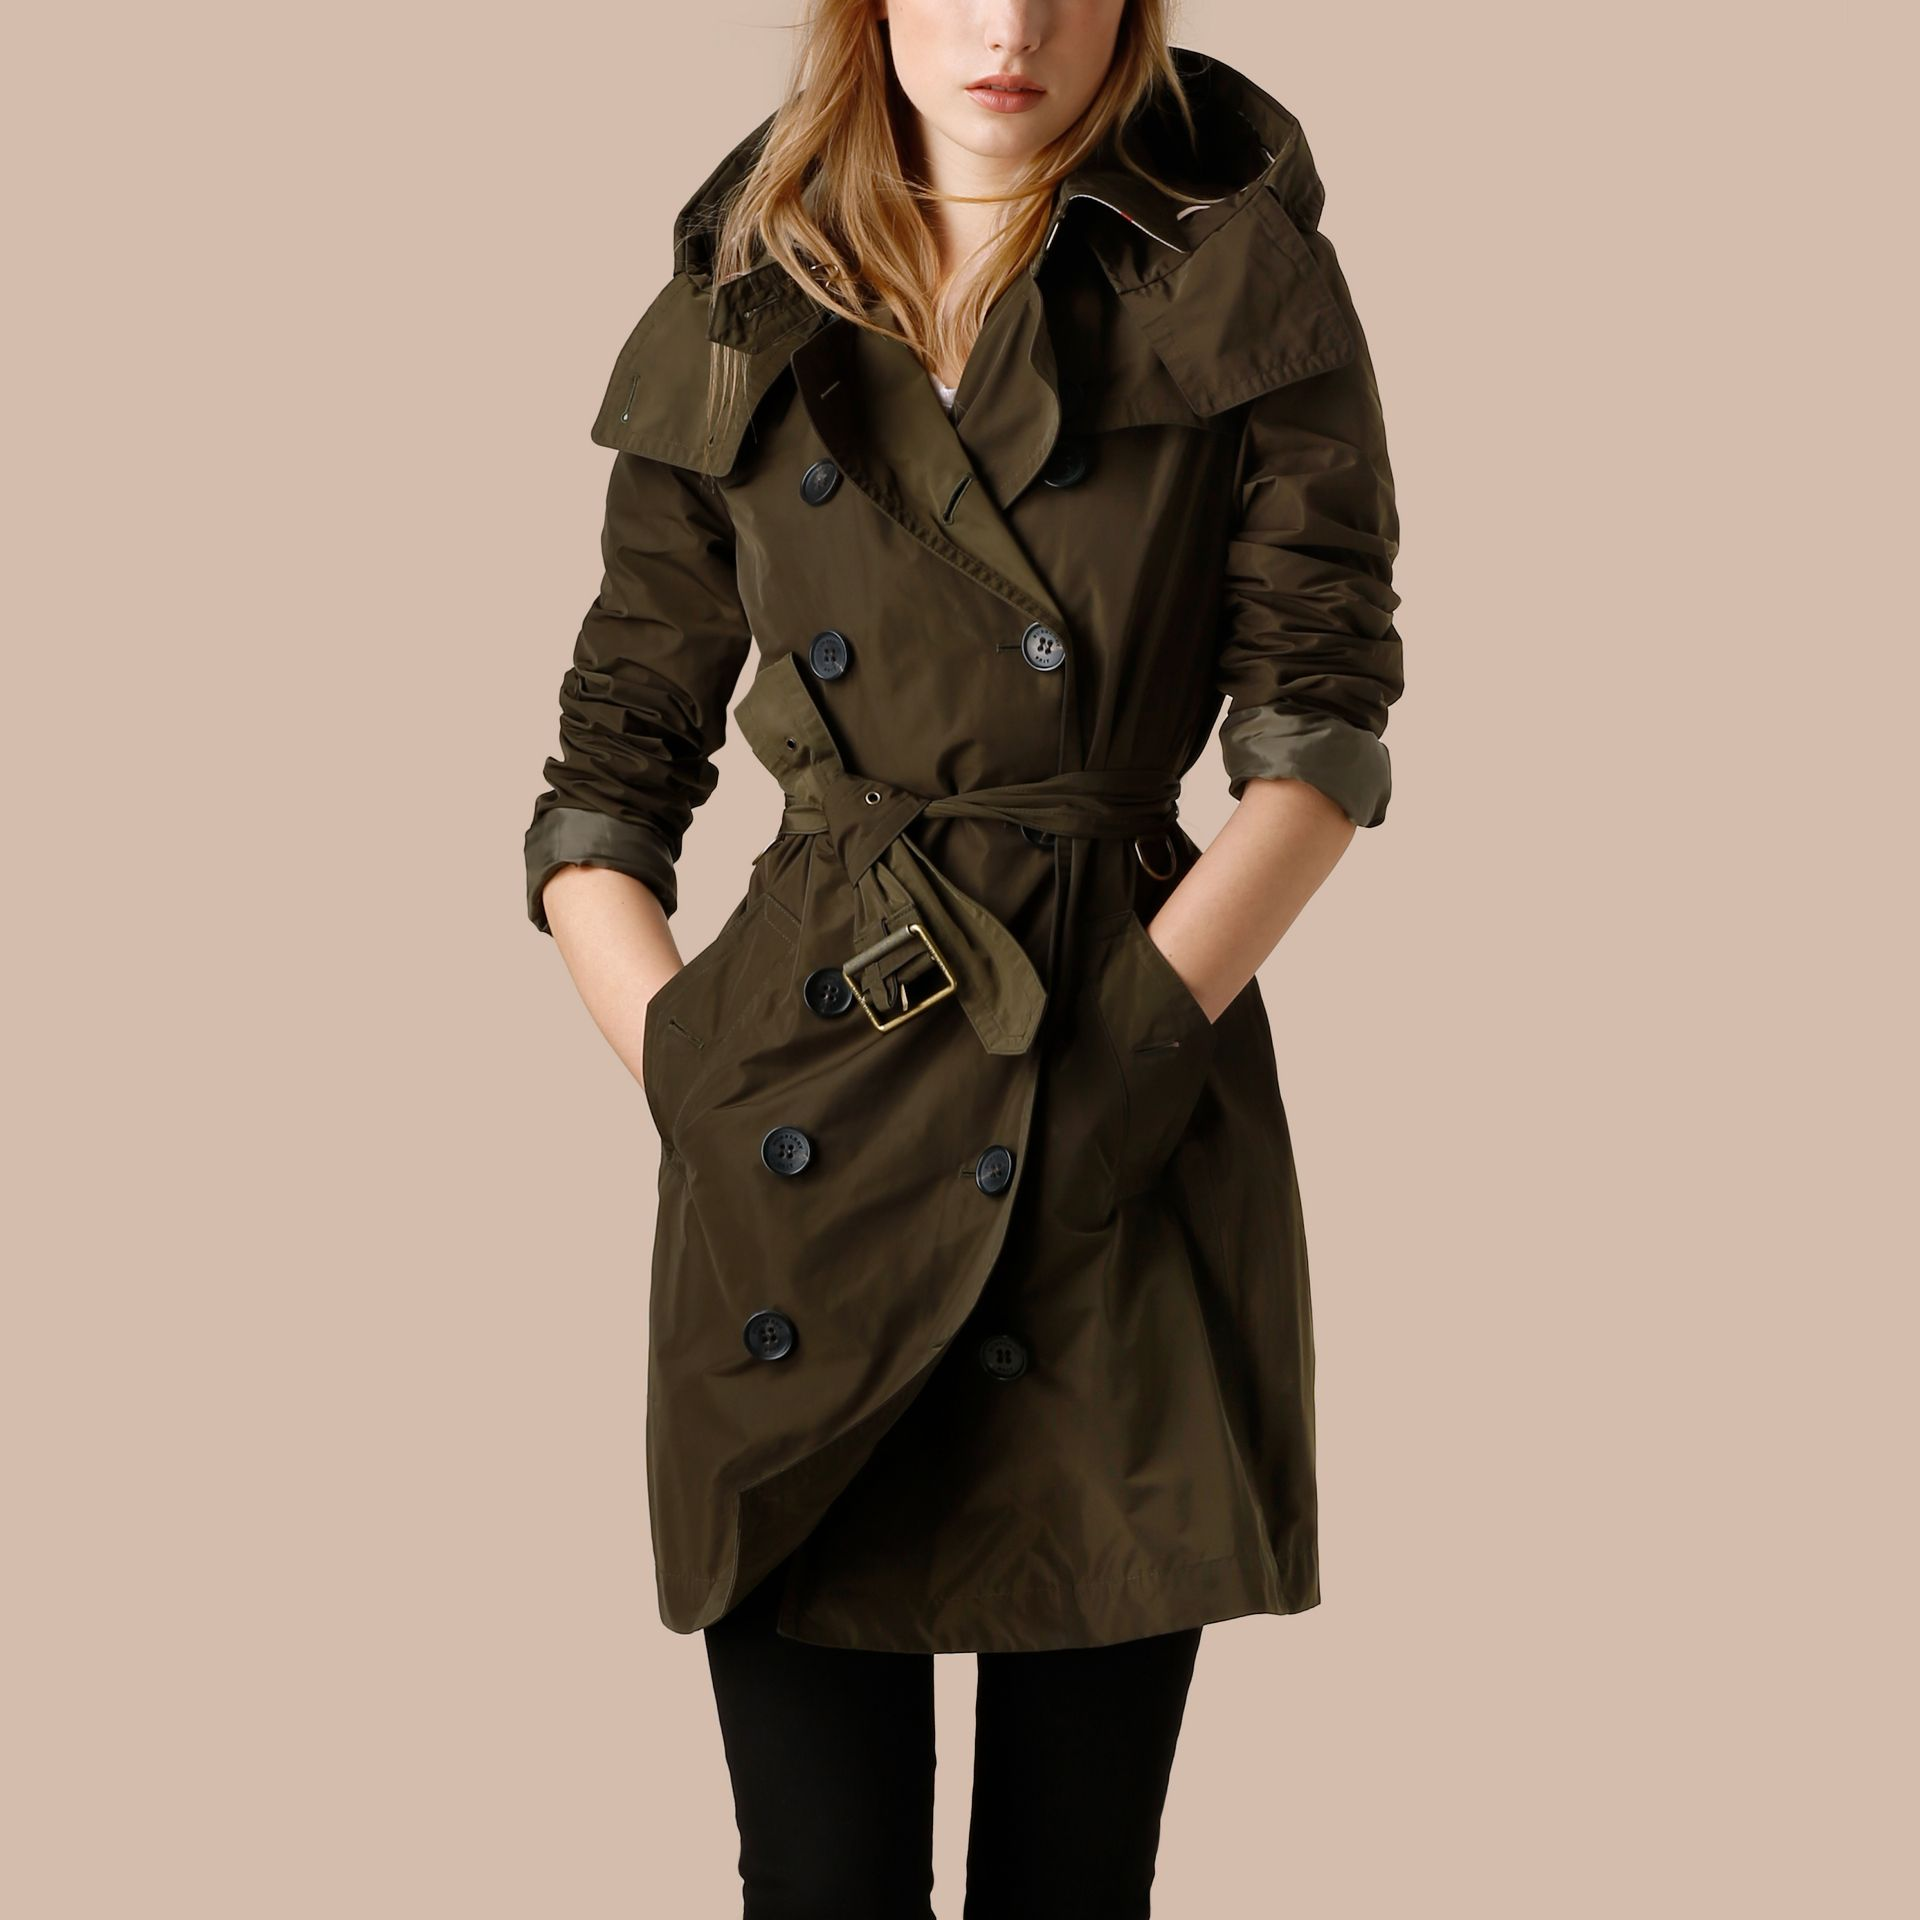 Dark olive Taffeta Trench Coat with Detachable Hood Dark Olive - gallery image 4